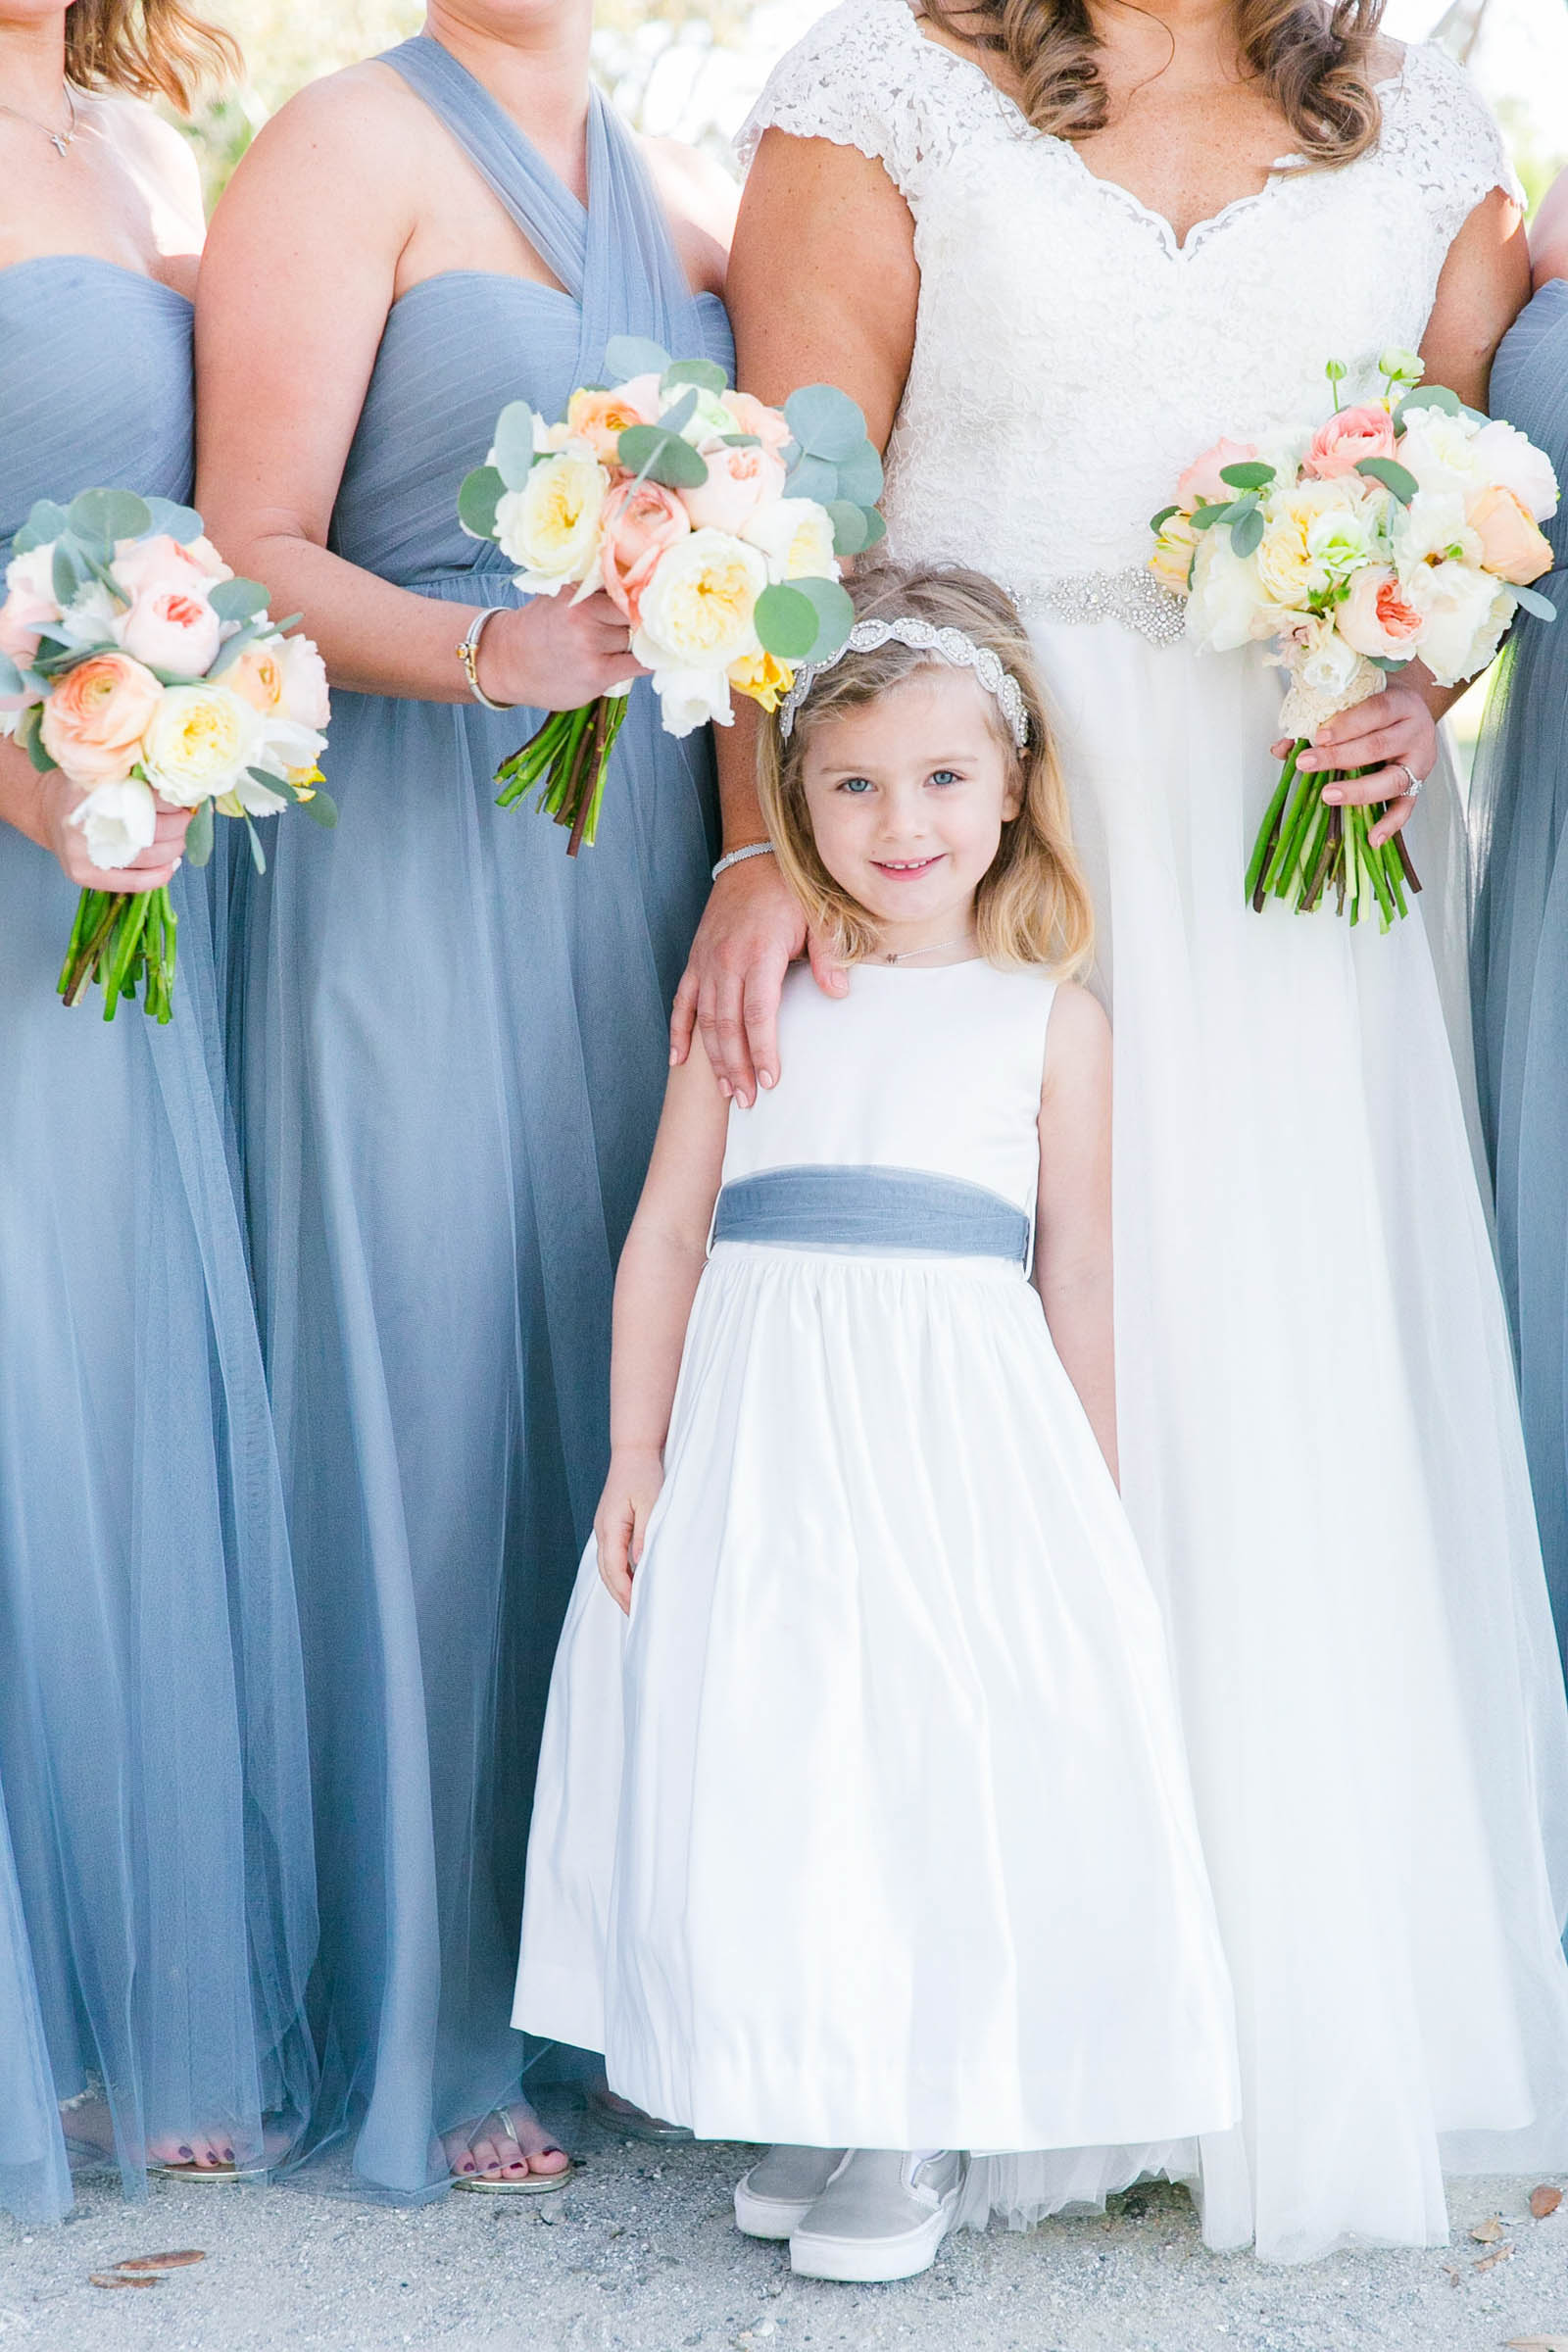 Flower girl portrait against bridal party - photo by Dana Cubbage Weddings